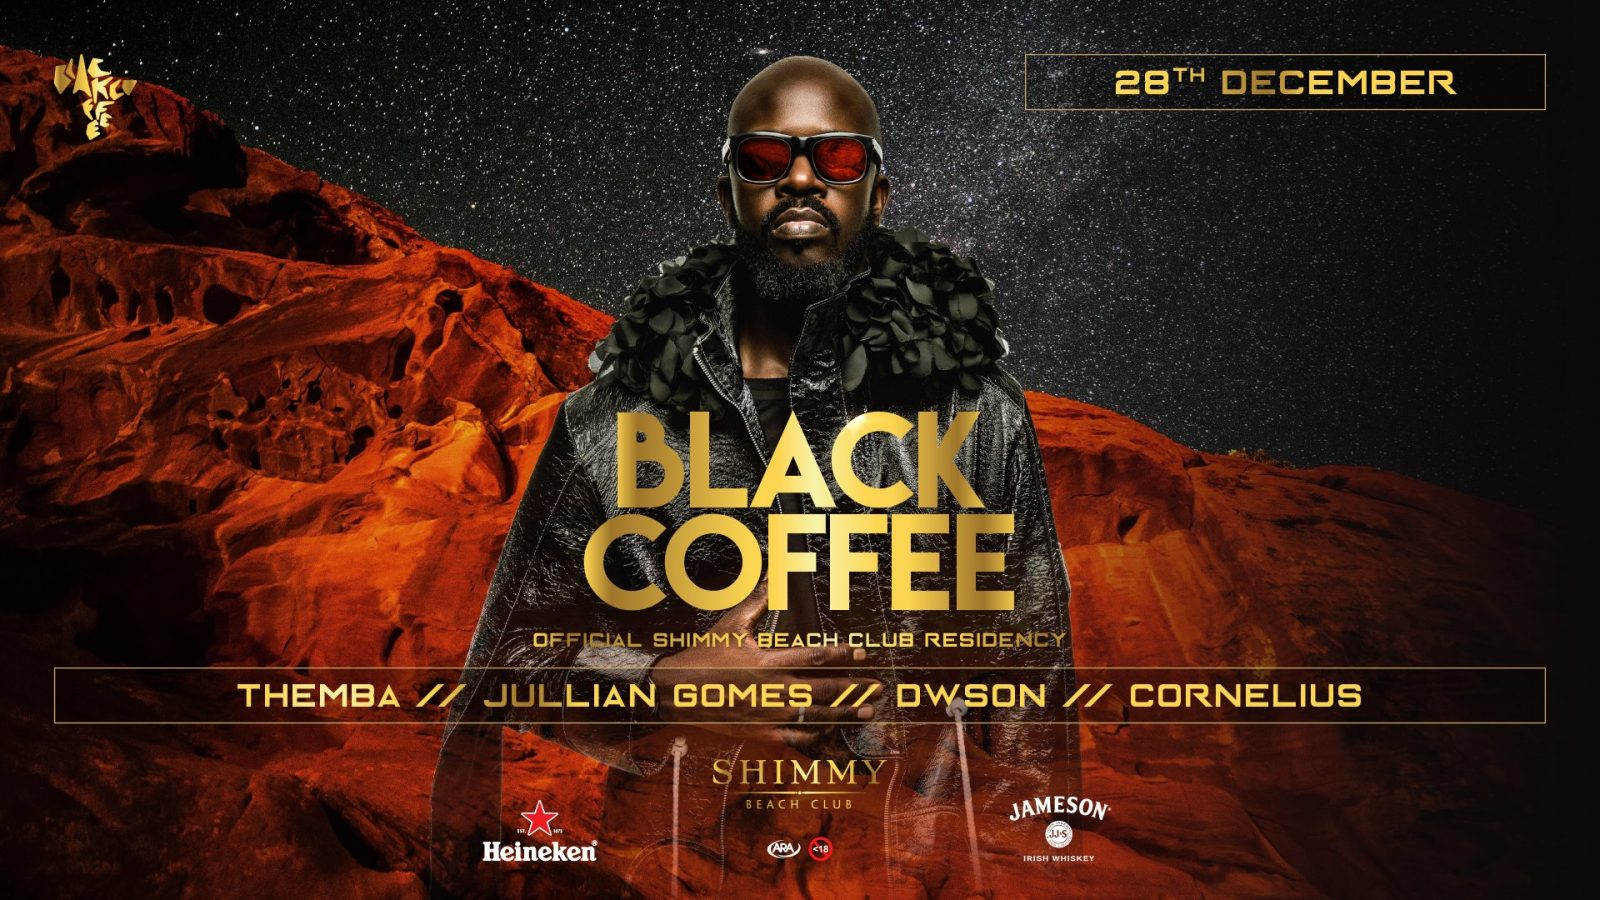 blackcoffee shimmy beacg club dwson